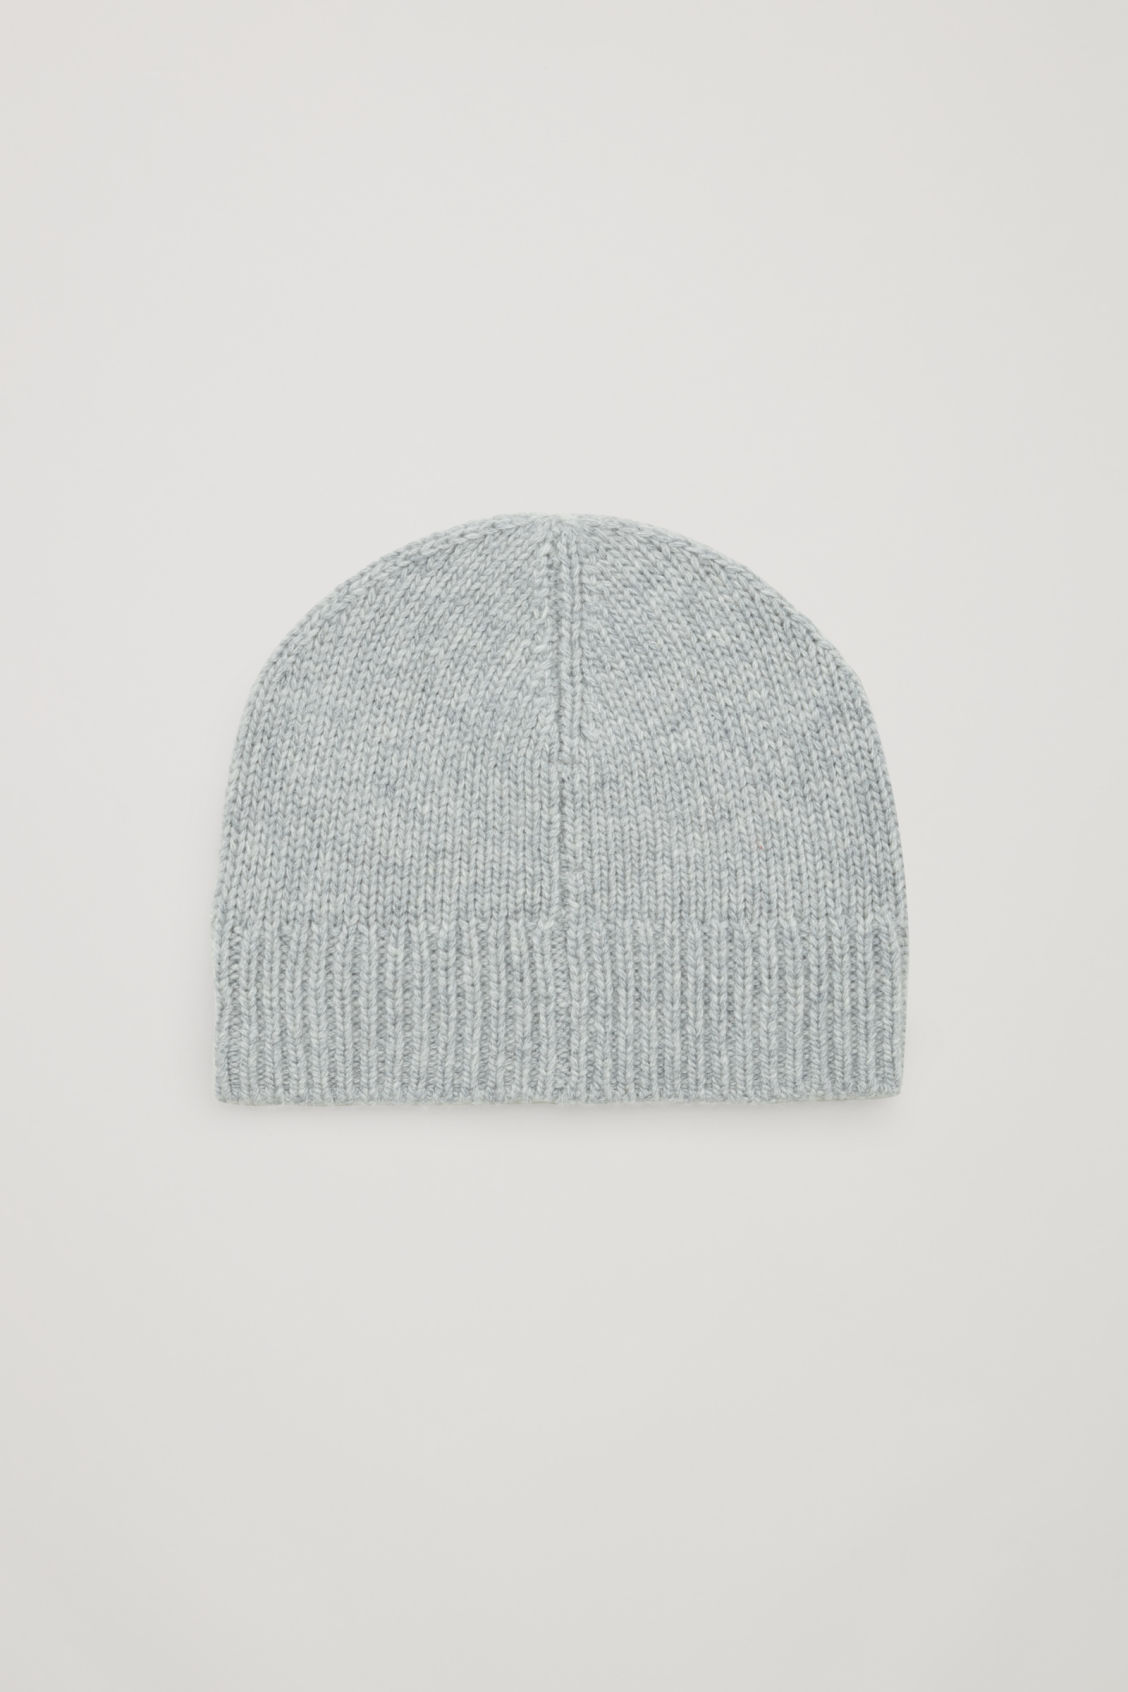 Front image of Cos cashmere-wool beanie hat  in grey